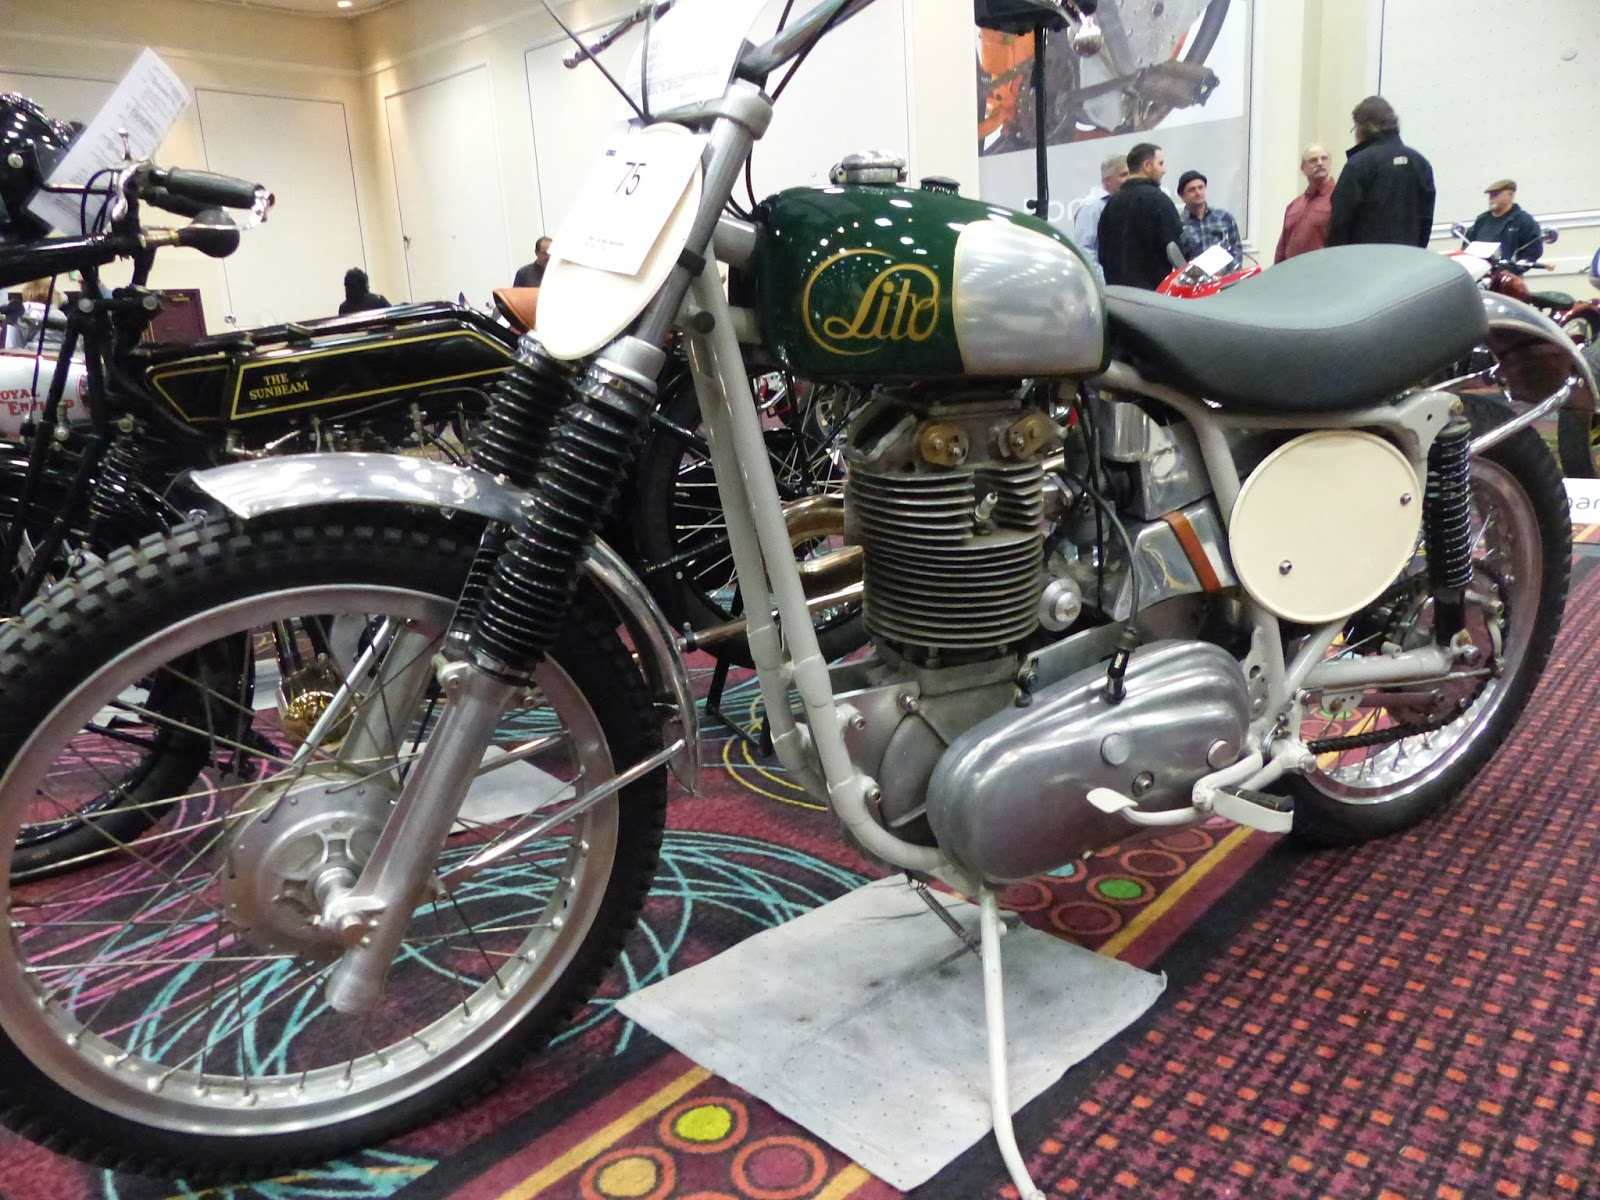 1962 Lito 500cc Moto Cross for sale at the 2016 Bonhams Las Vegas Motorcycle Auction